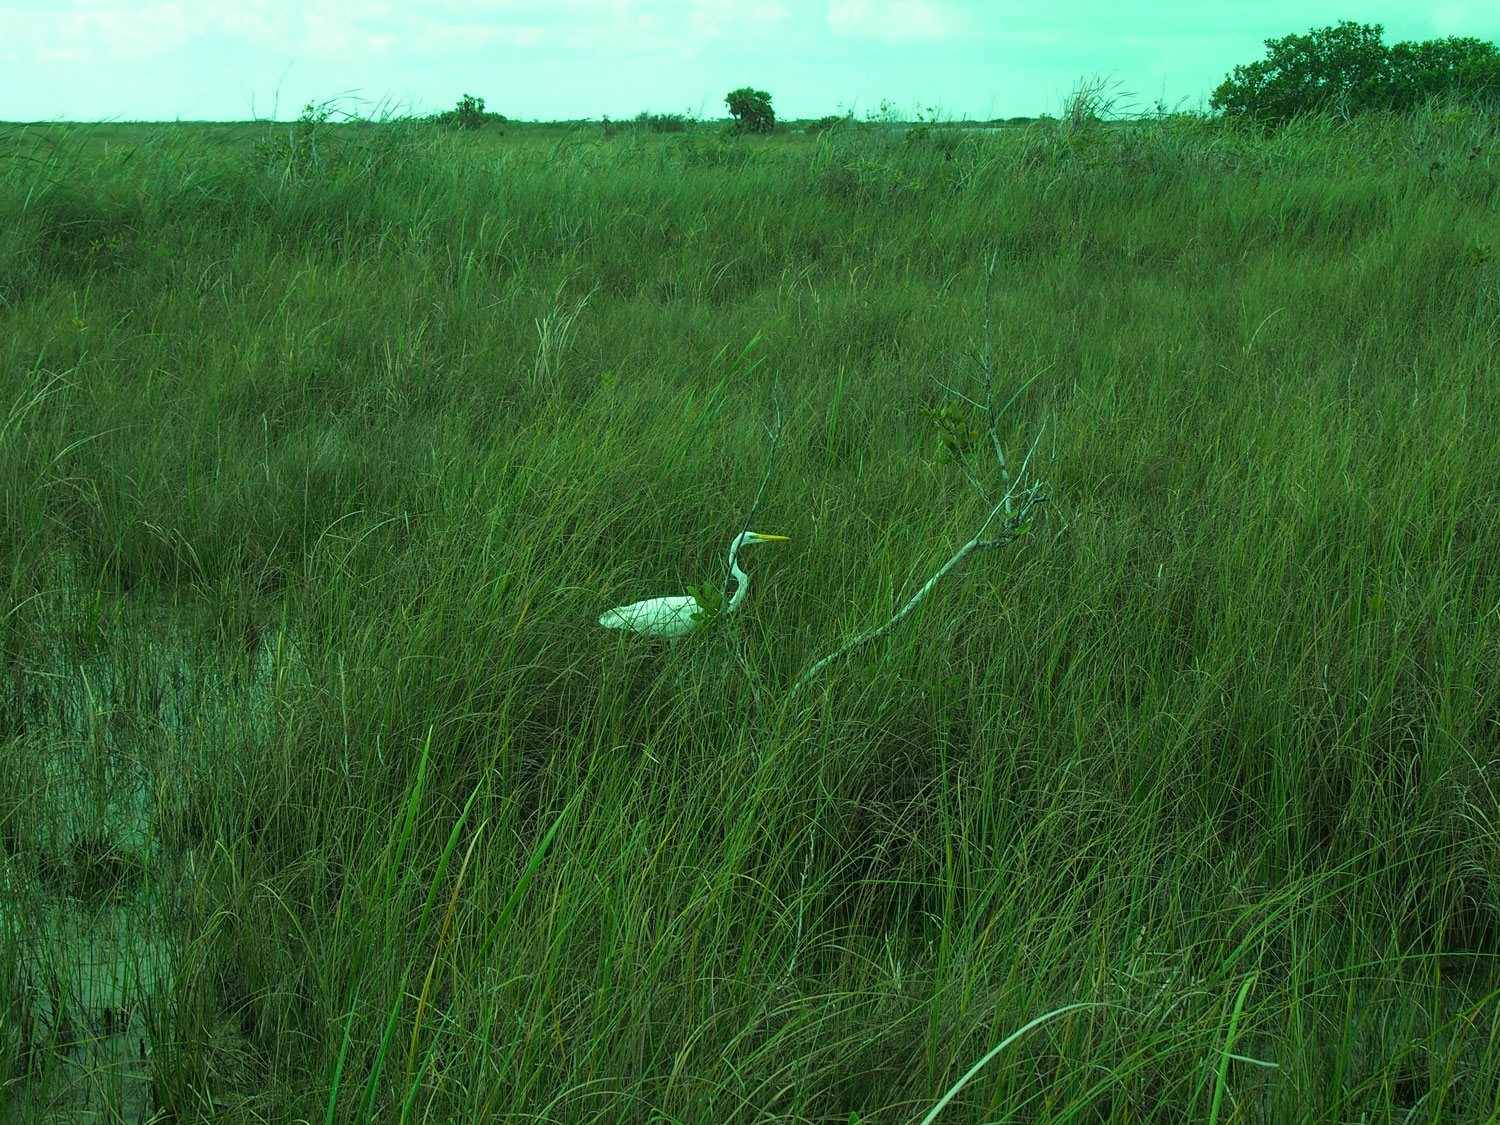 Try to spot a white egret!